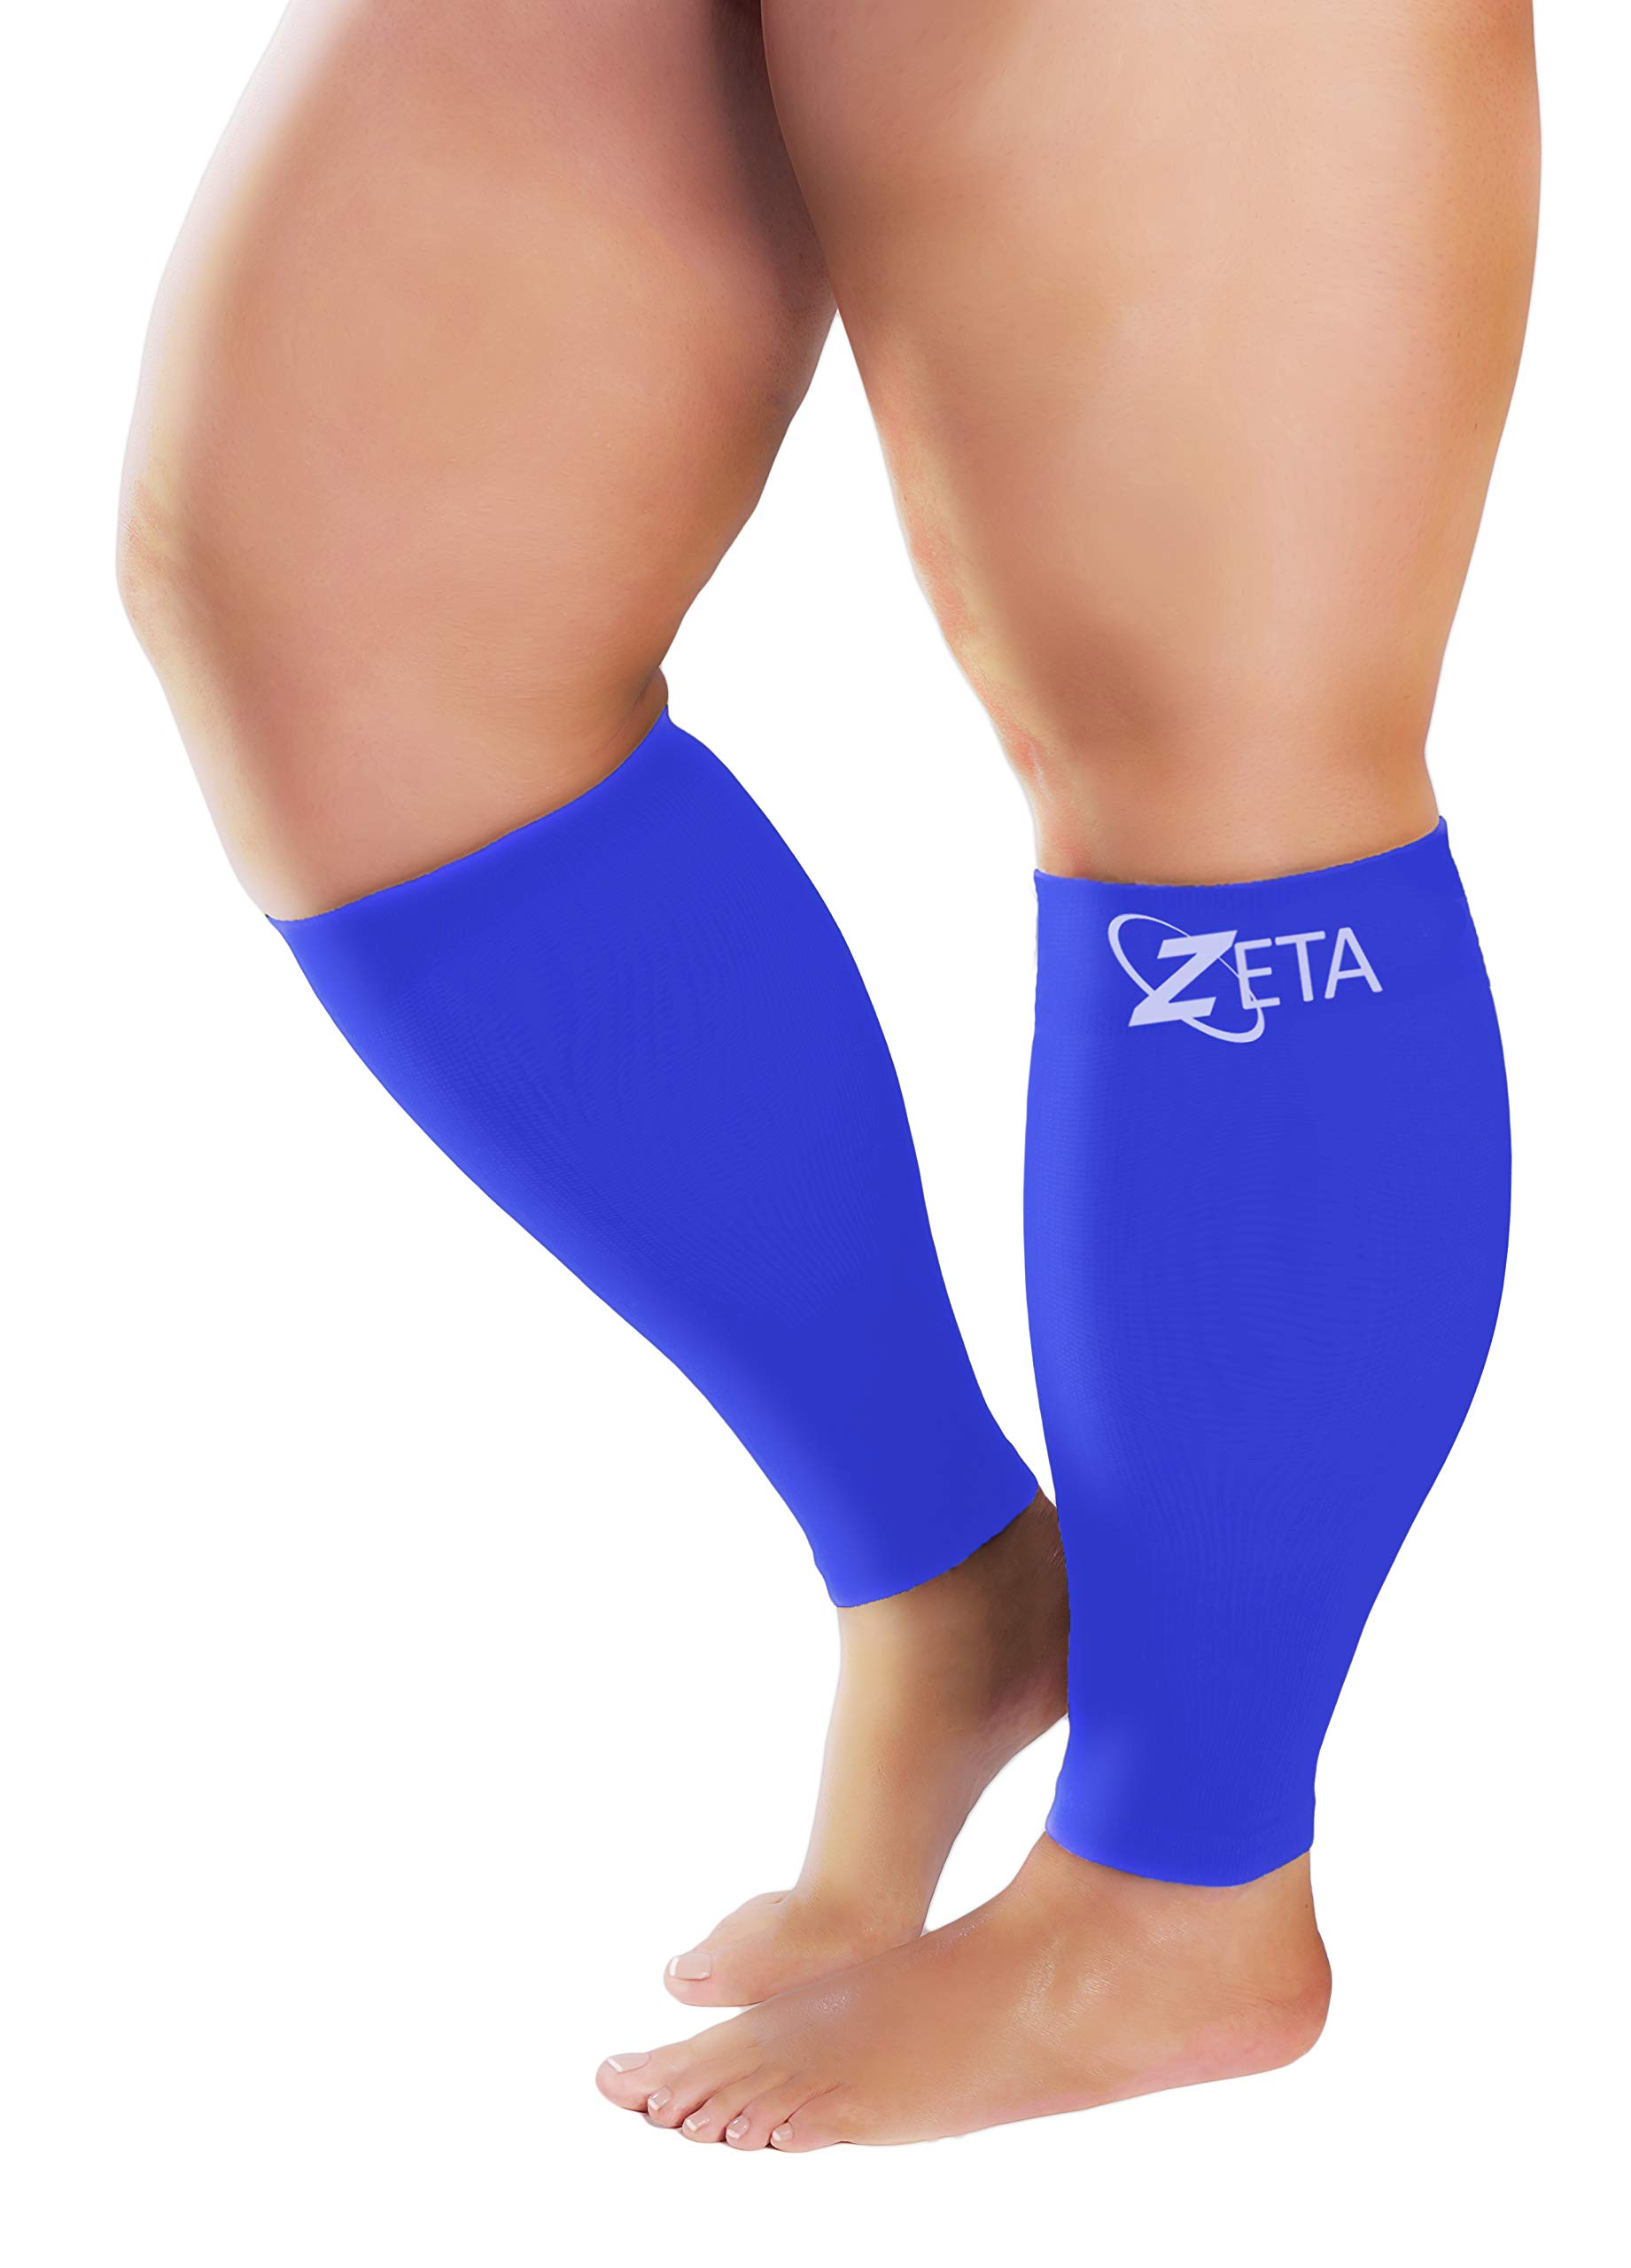 Zeta Sleeve XXL Wide Plus Size Calf Compression, Soothing Comfy Gradient Support, Prevents Swelling, Pain, Edema, DVT, Large Cuffs, Stretch to 26 Inches, Unisex, for Nurses, Seniors, Flights (Blue)